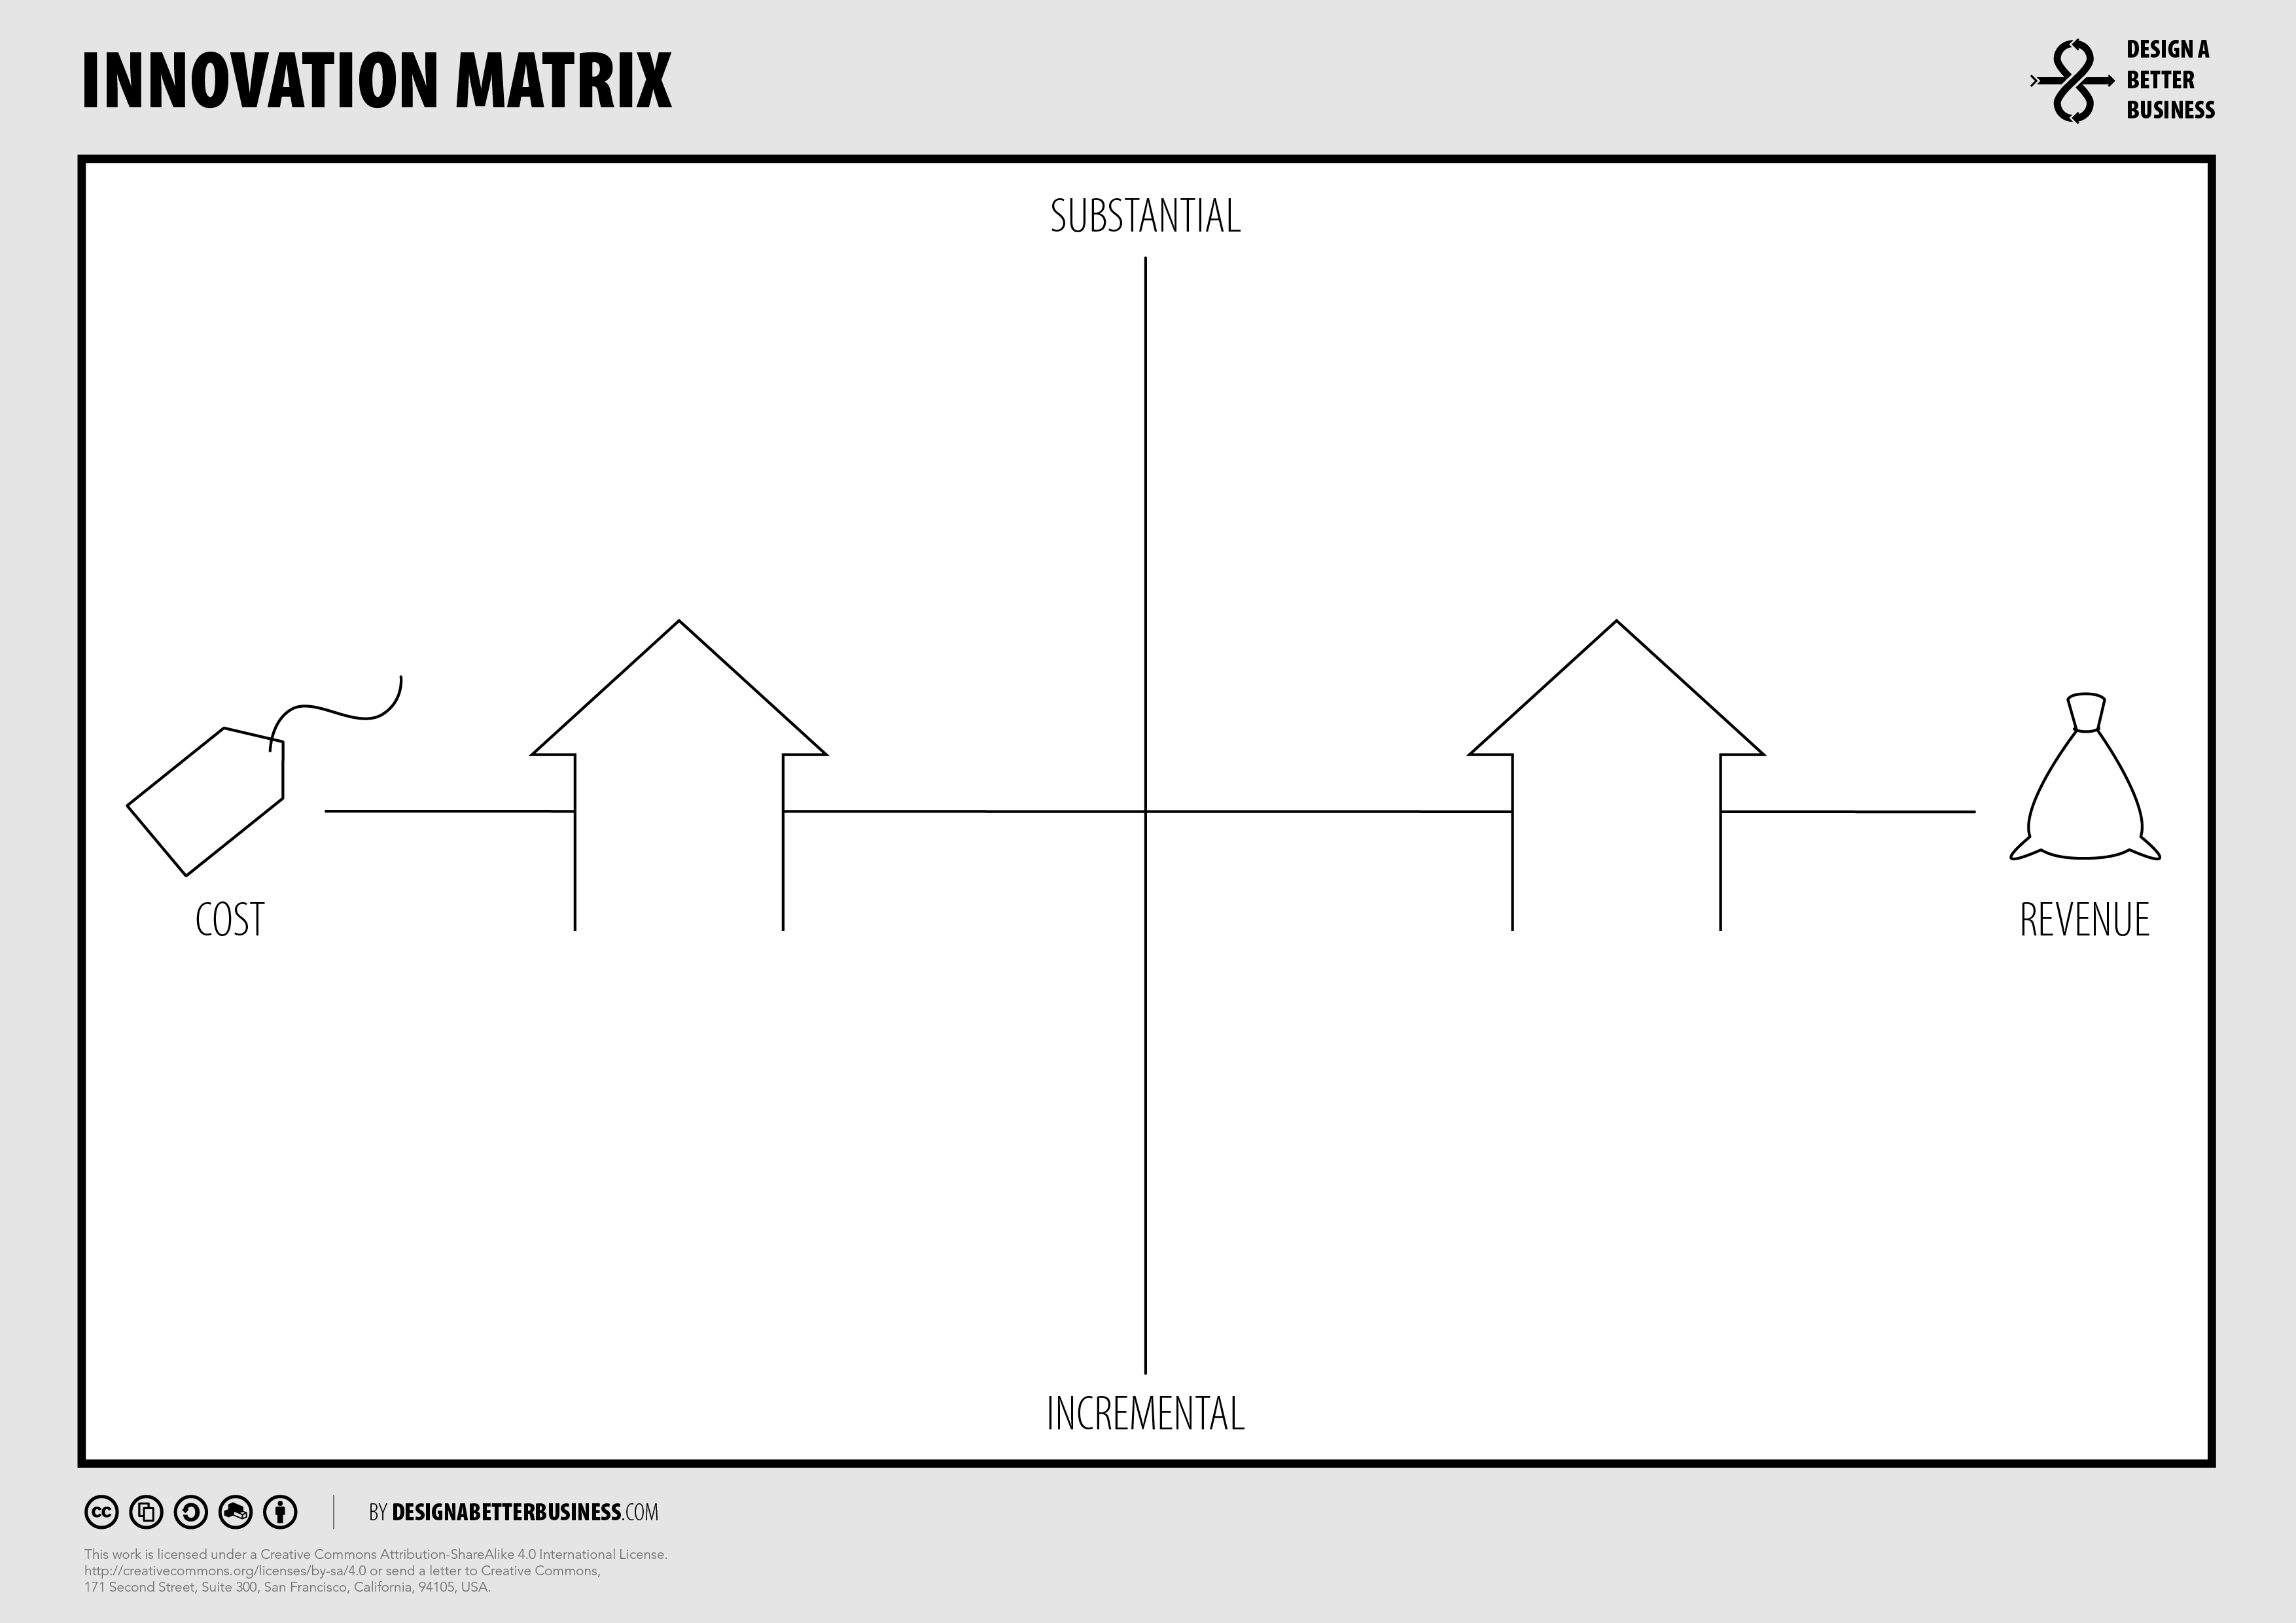 Innovation Matrix